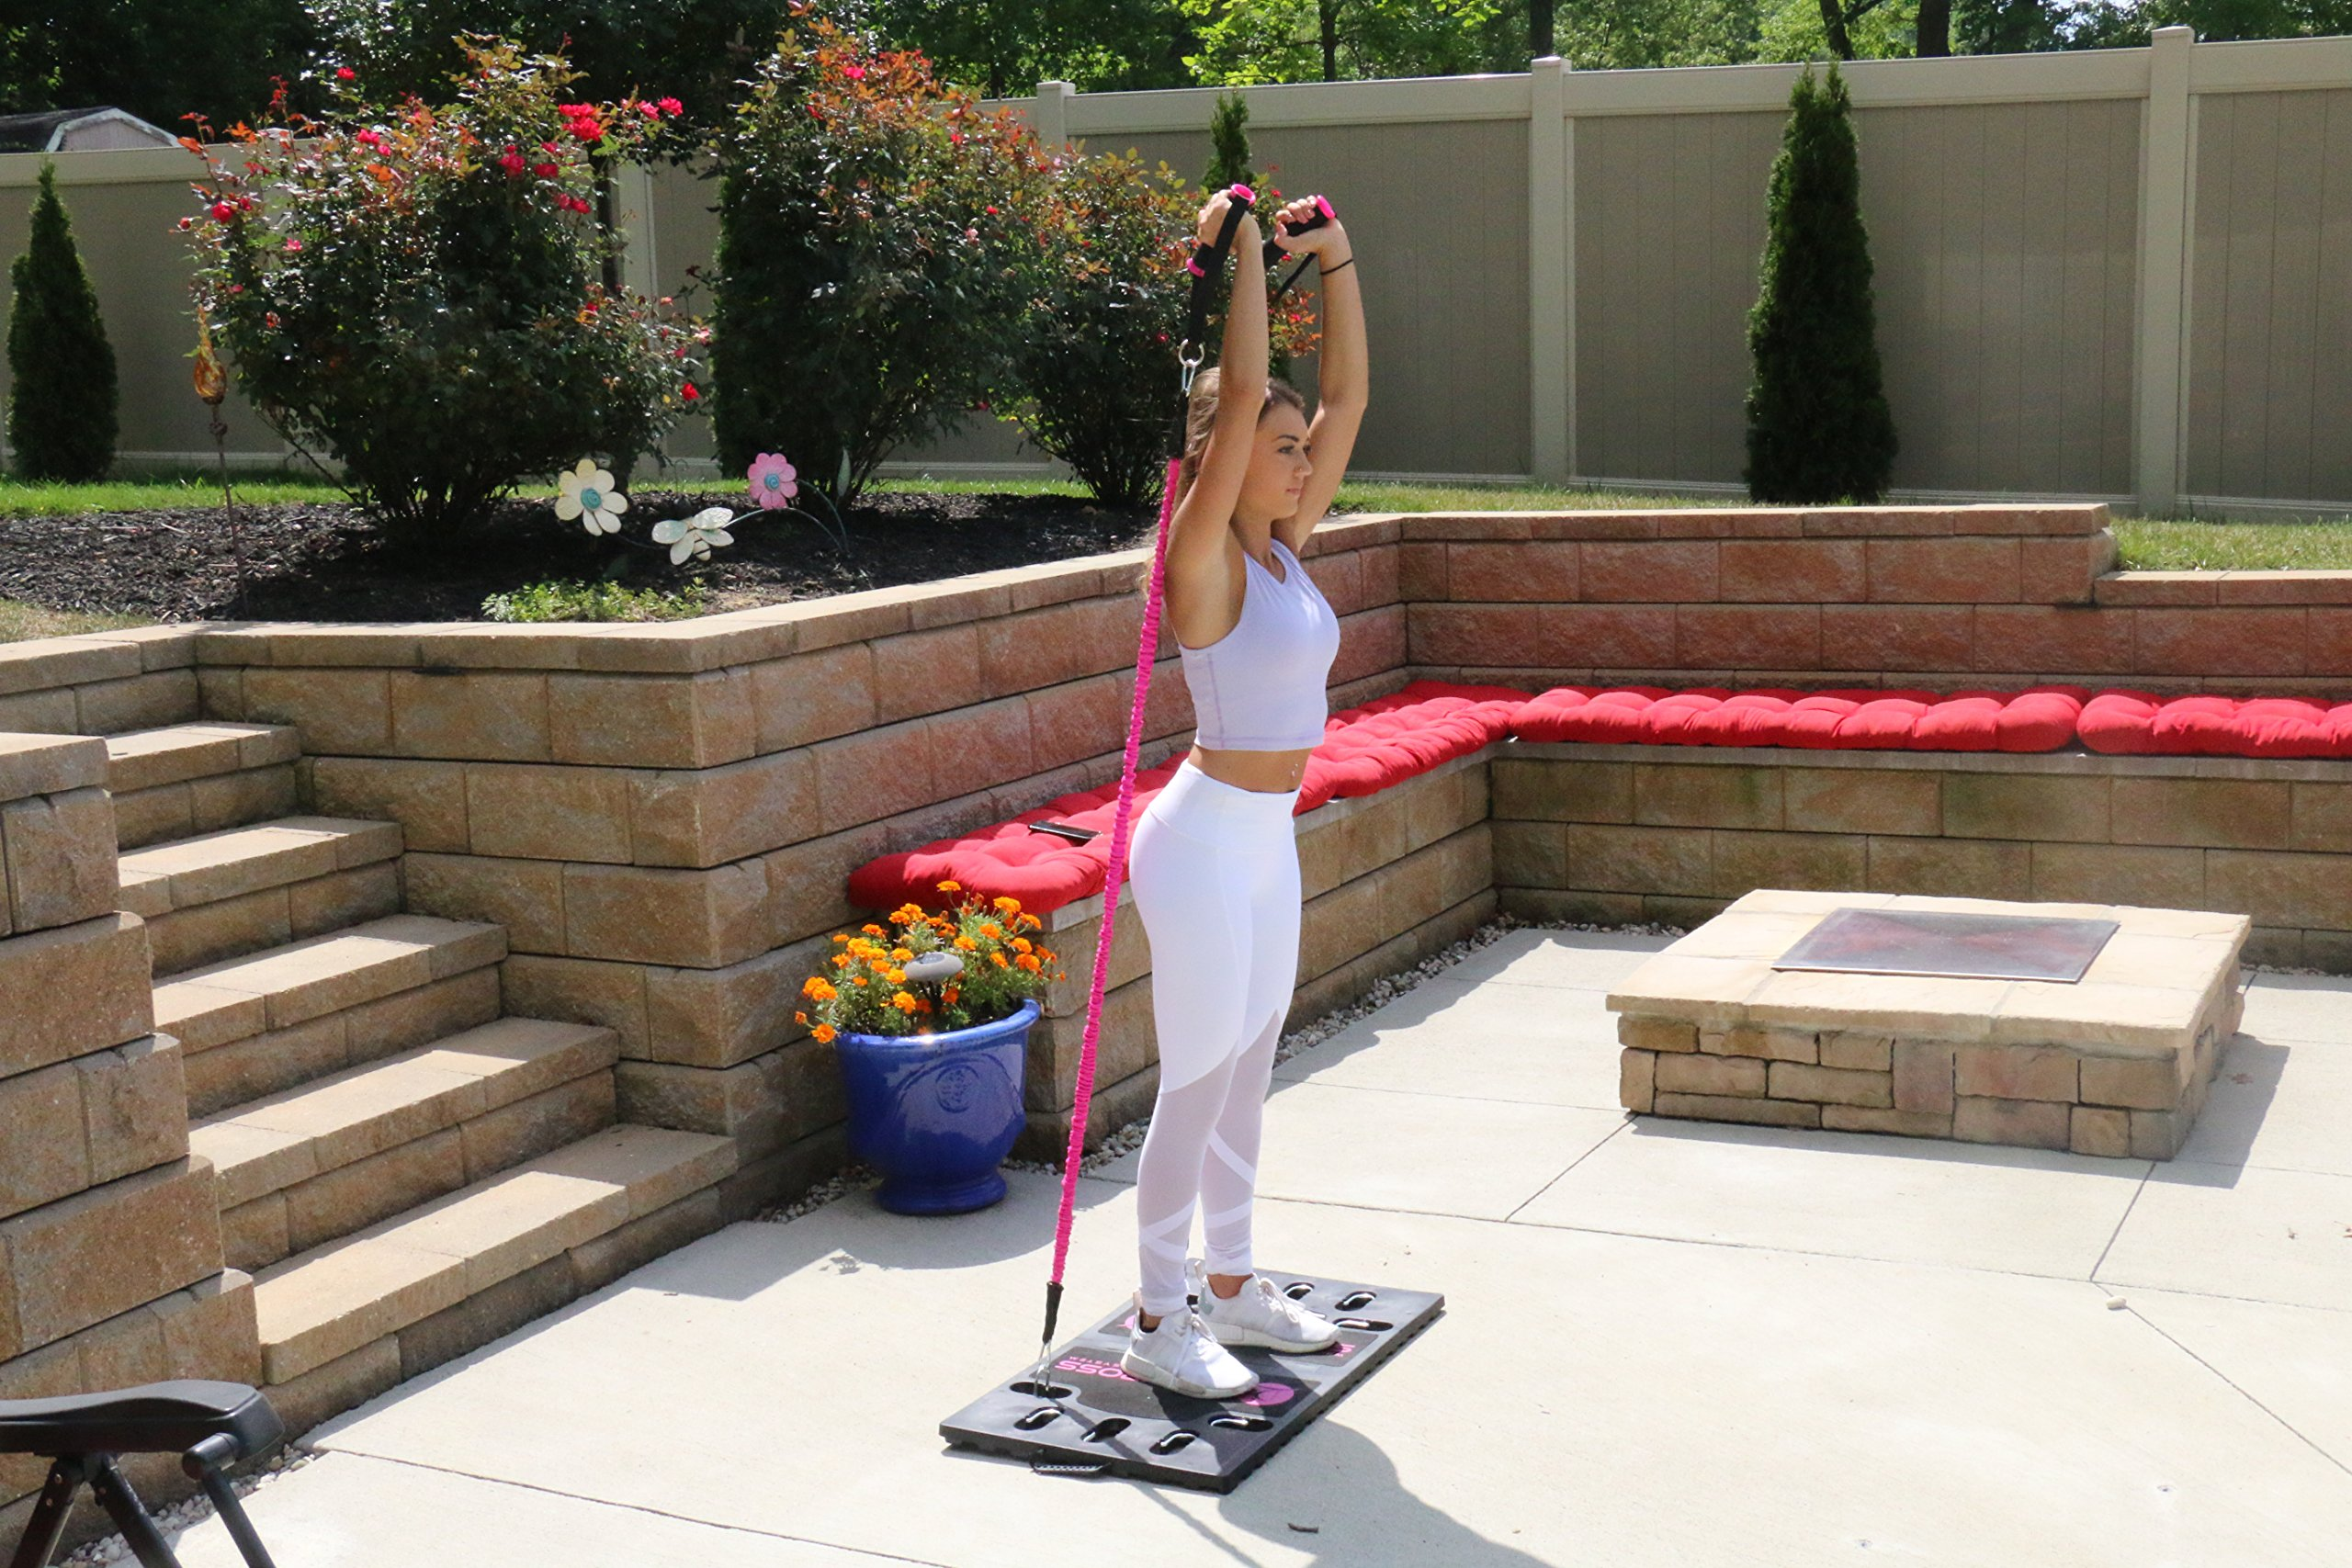 BodyBoss Home Gym 2.0 - Full Portable Gym - Full Body Workouts for Home, Travel or Anywhere You Take It. by BodyBoss (Image #3)